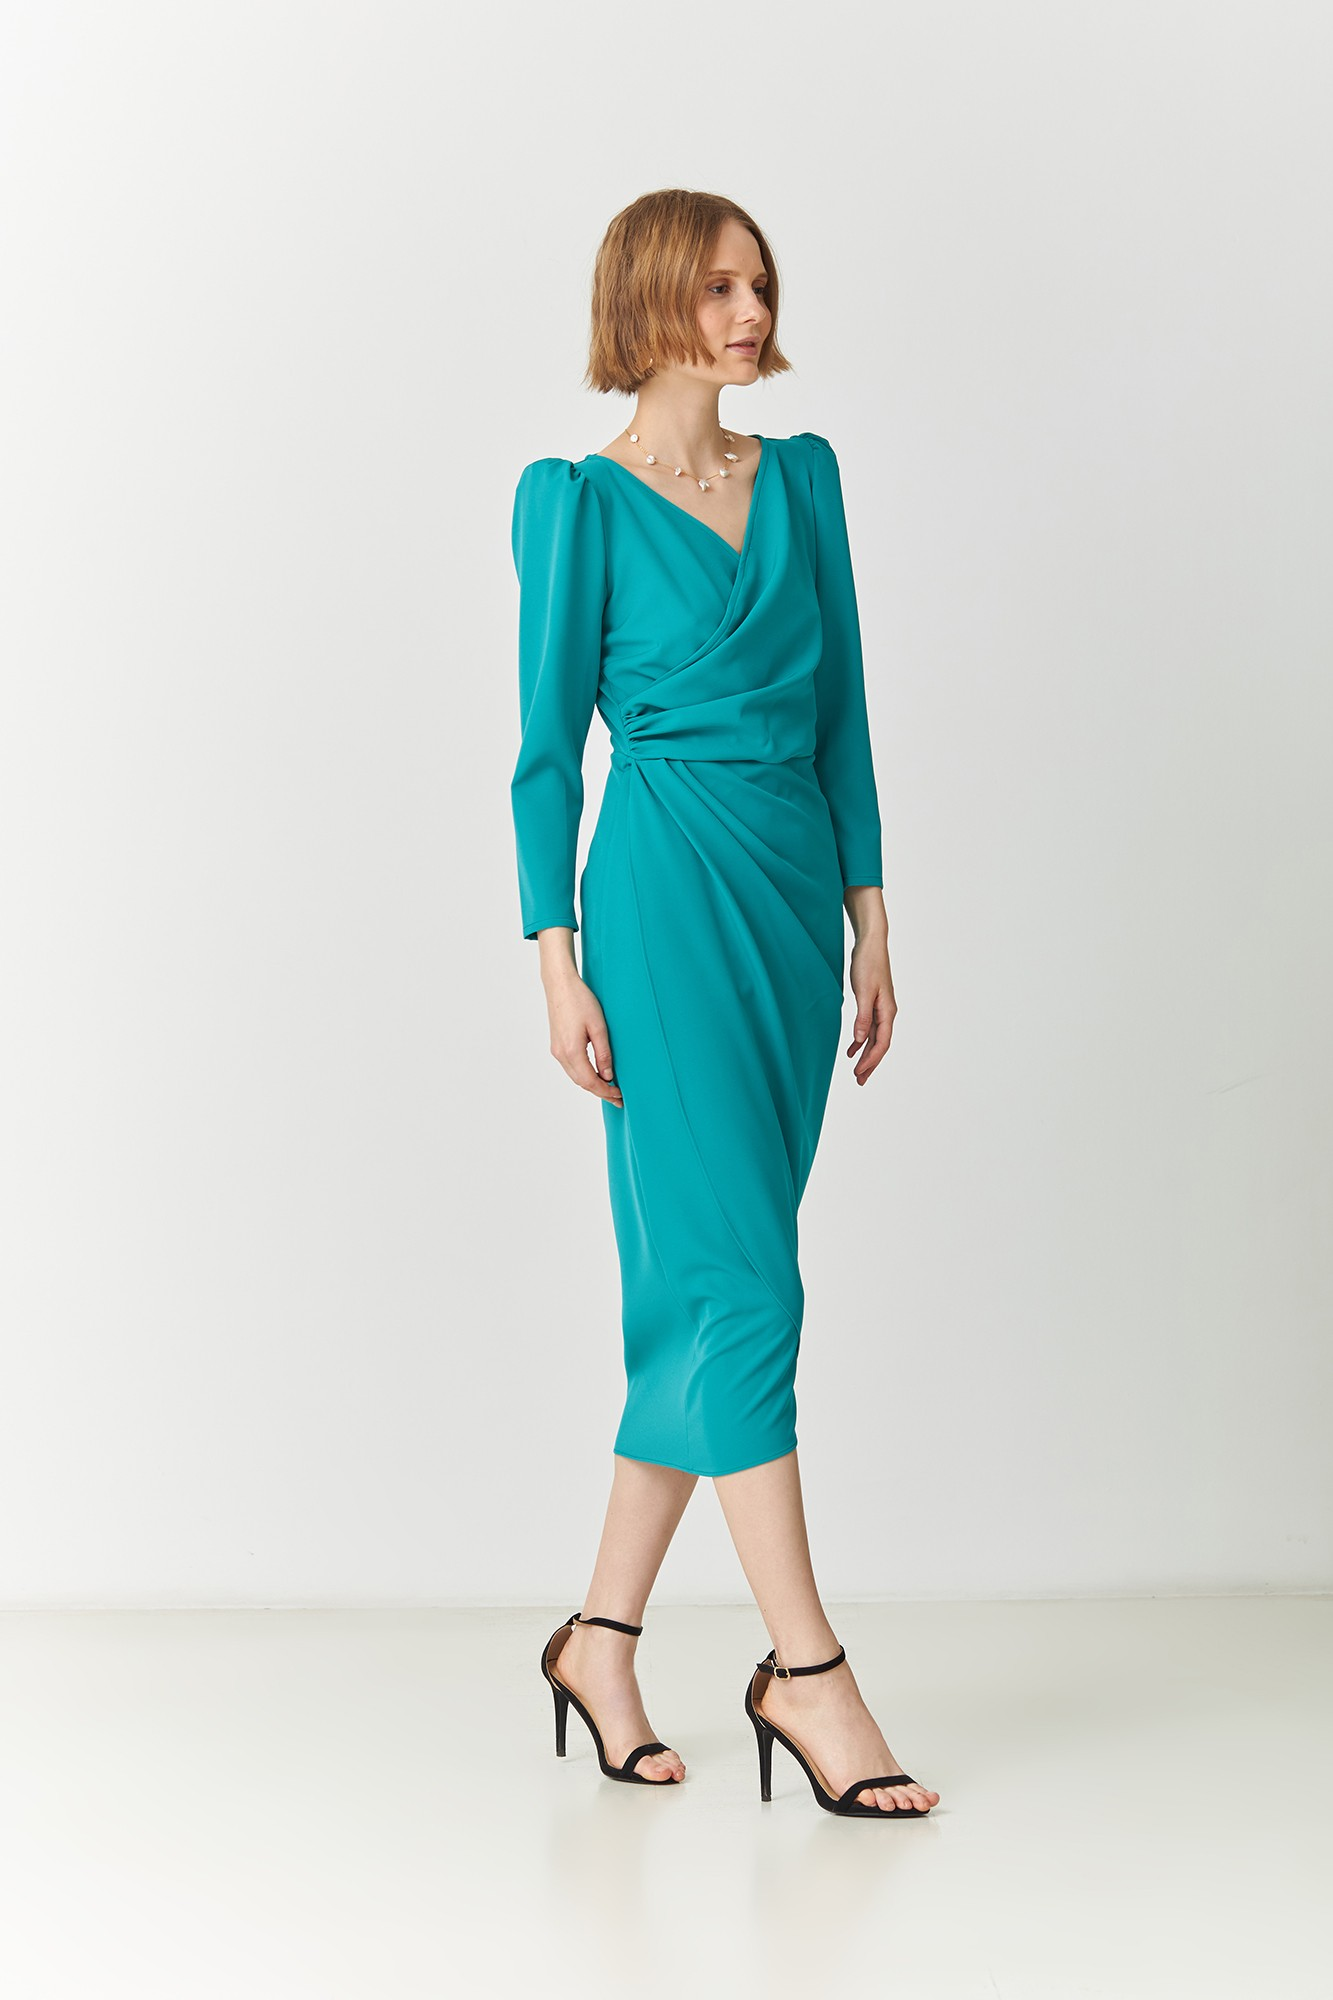 DAYLE GREEN DRESS